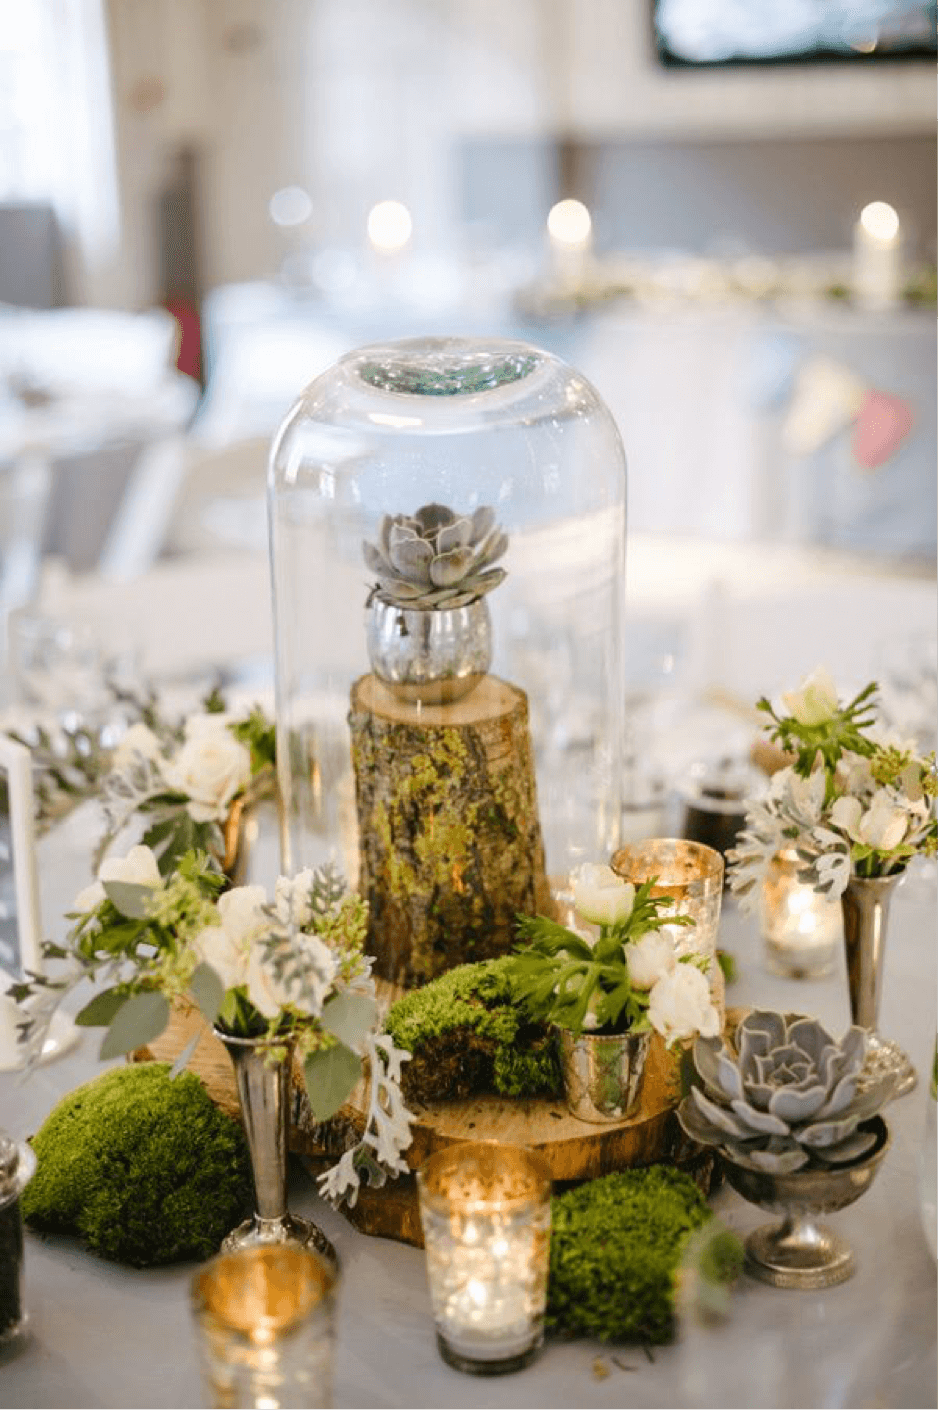 Woodland Inspired Miniature Vases and Domed Succulents Table Decor